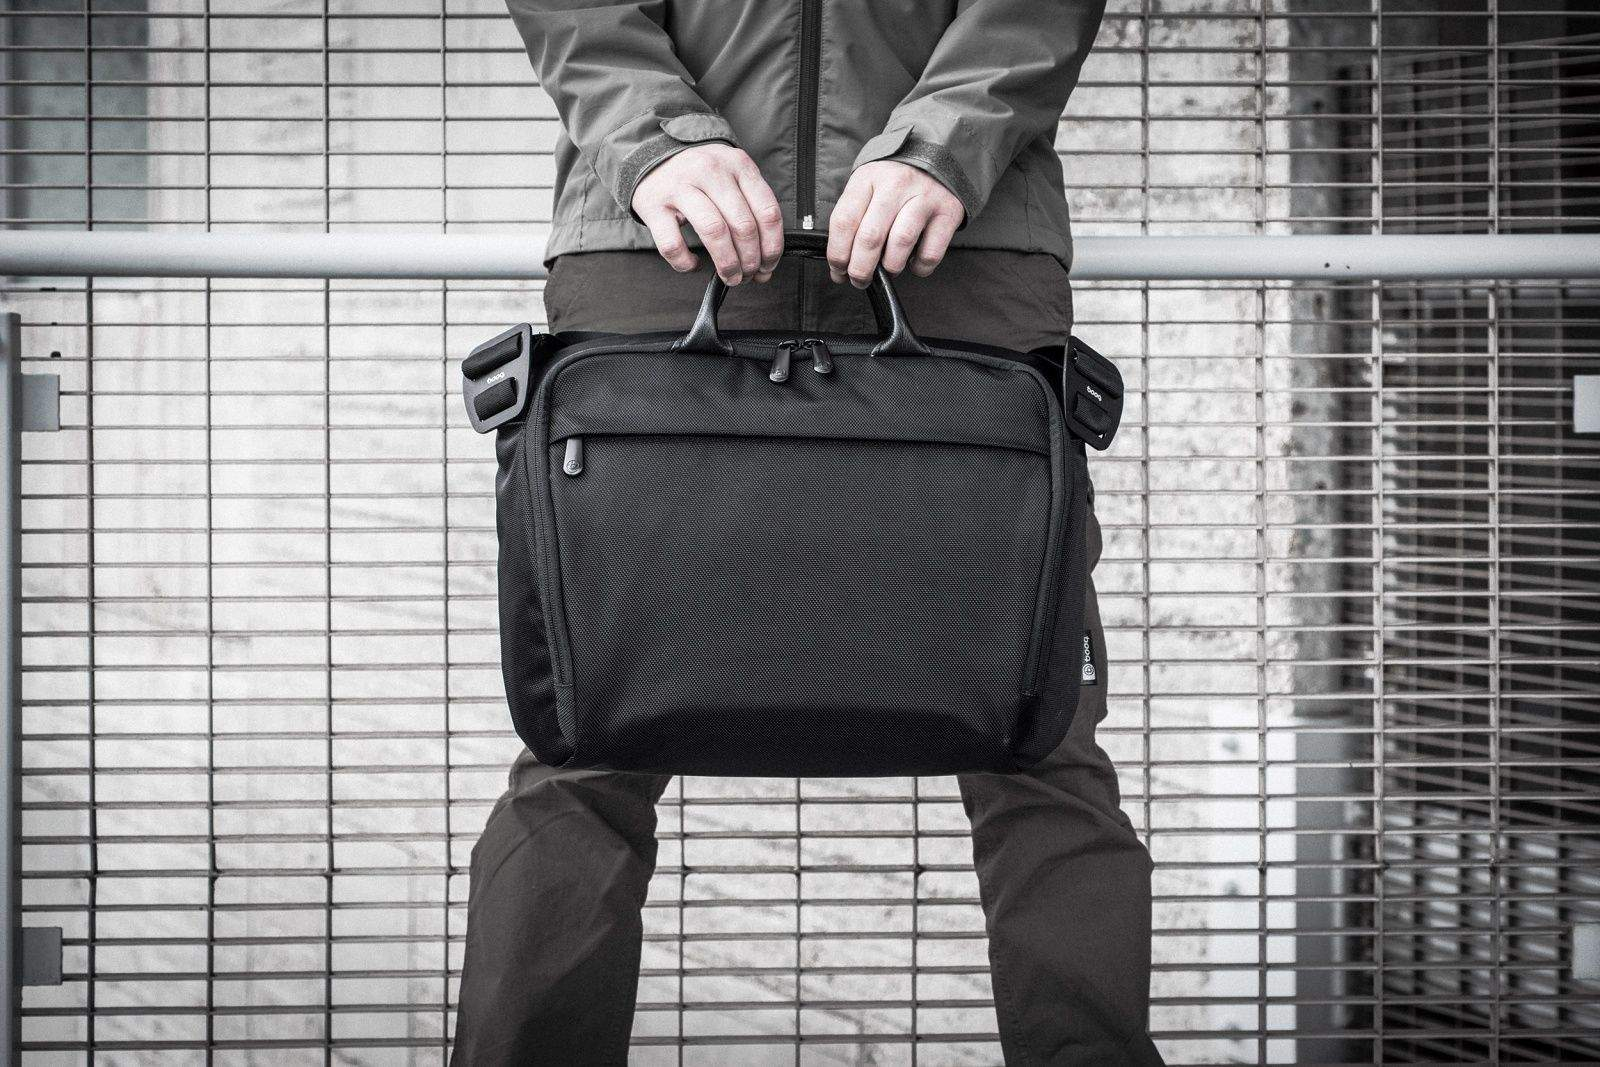 The new Boa saddle bag by Booq is designed to carry the 15-inch MacBook Pro.